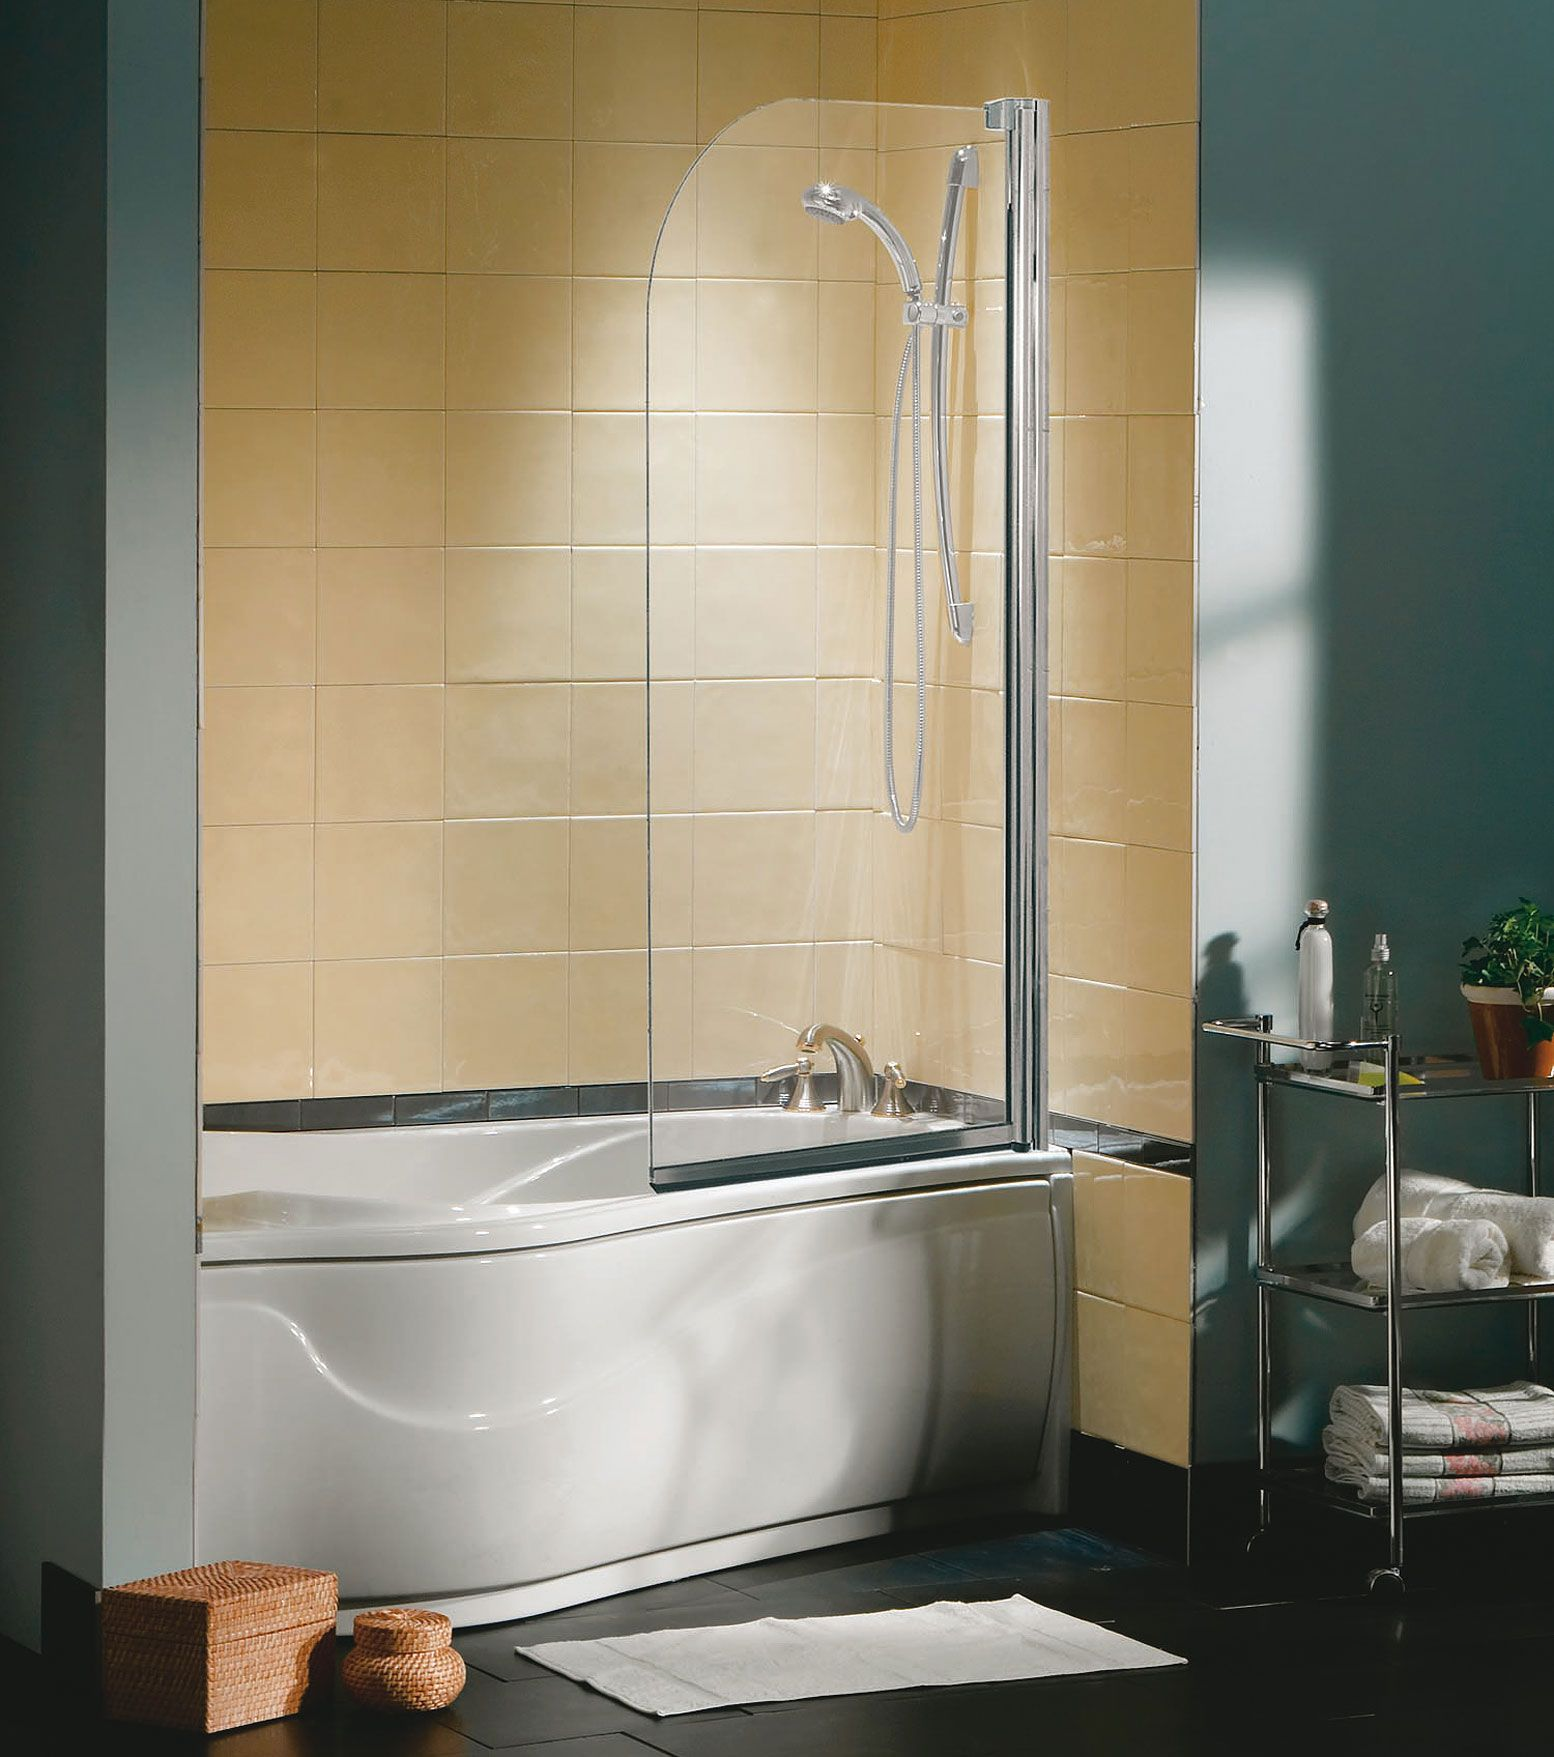 Tub Shield 1-panel Tub showers door - MAAX - could have white frame ...